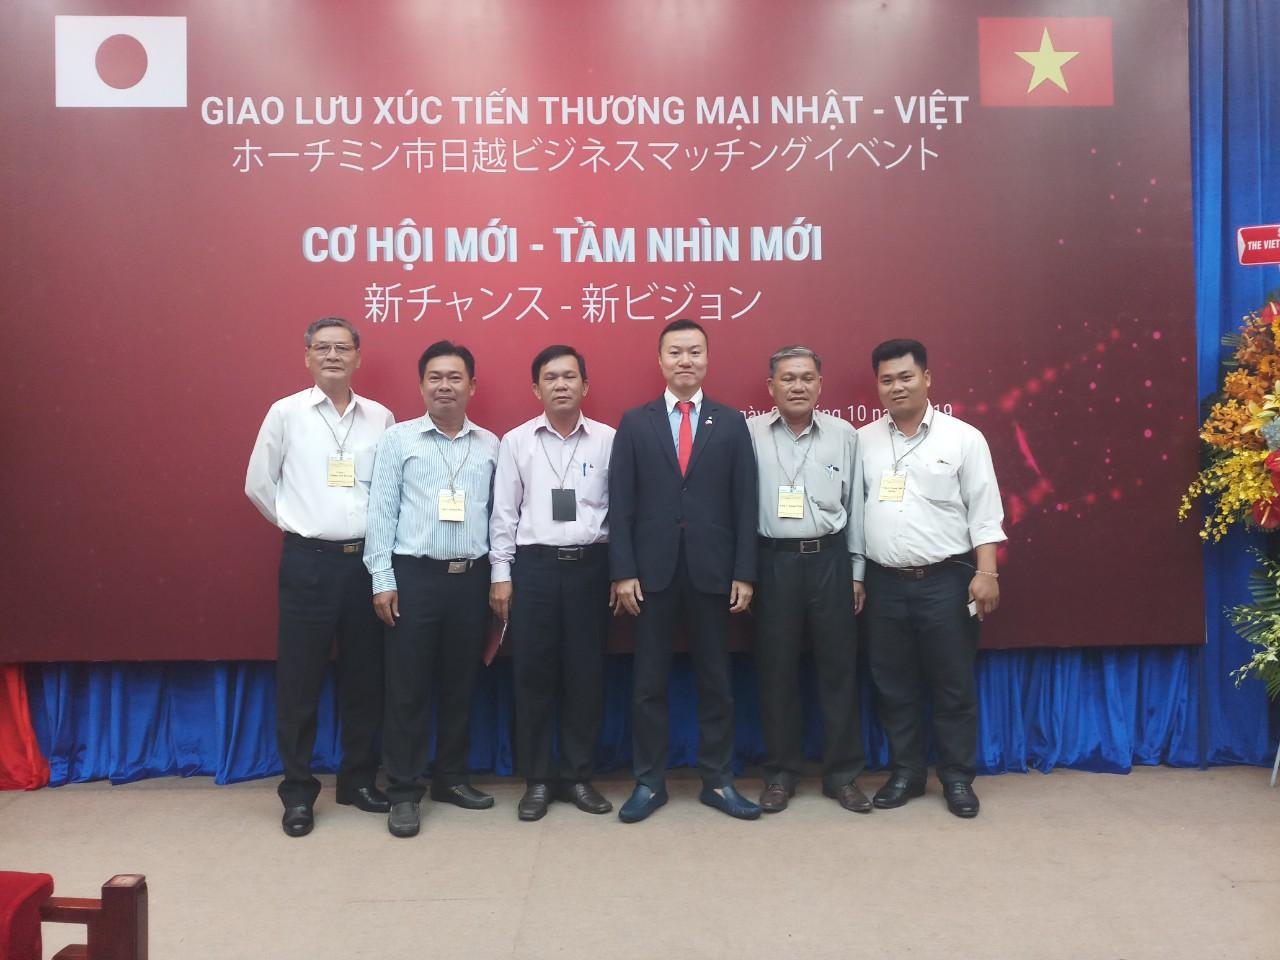 Delegation of Long An province's business attends the conference on Japan-Vietnam trade promotion in Ho Chi Minh city